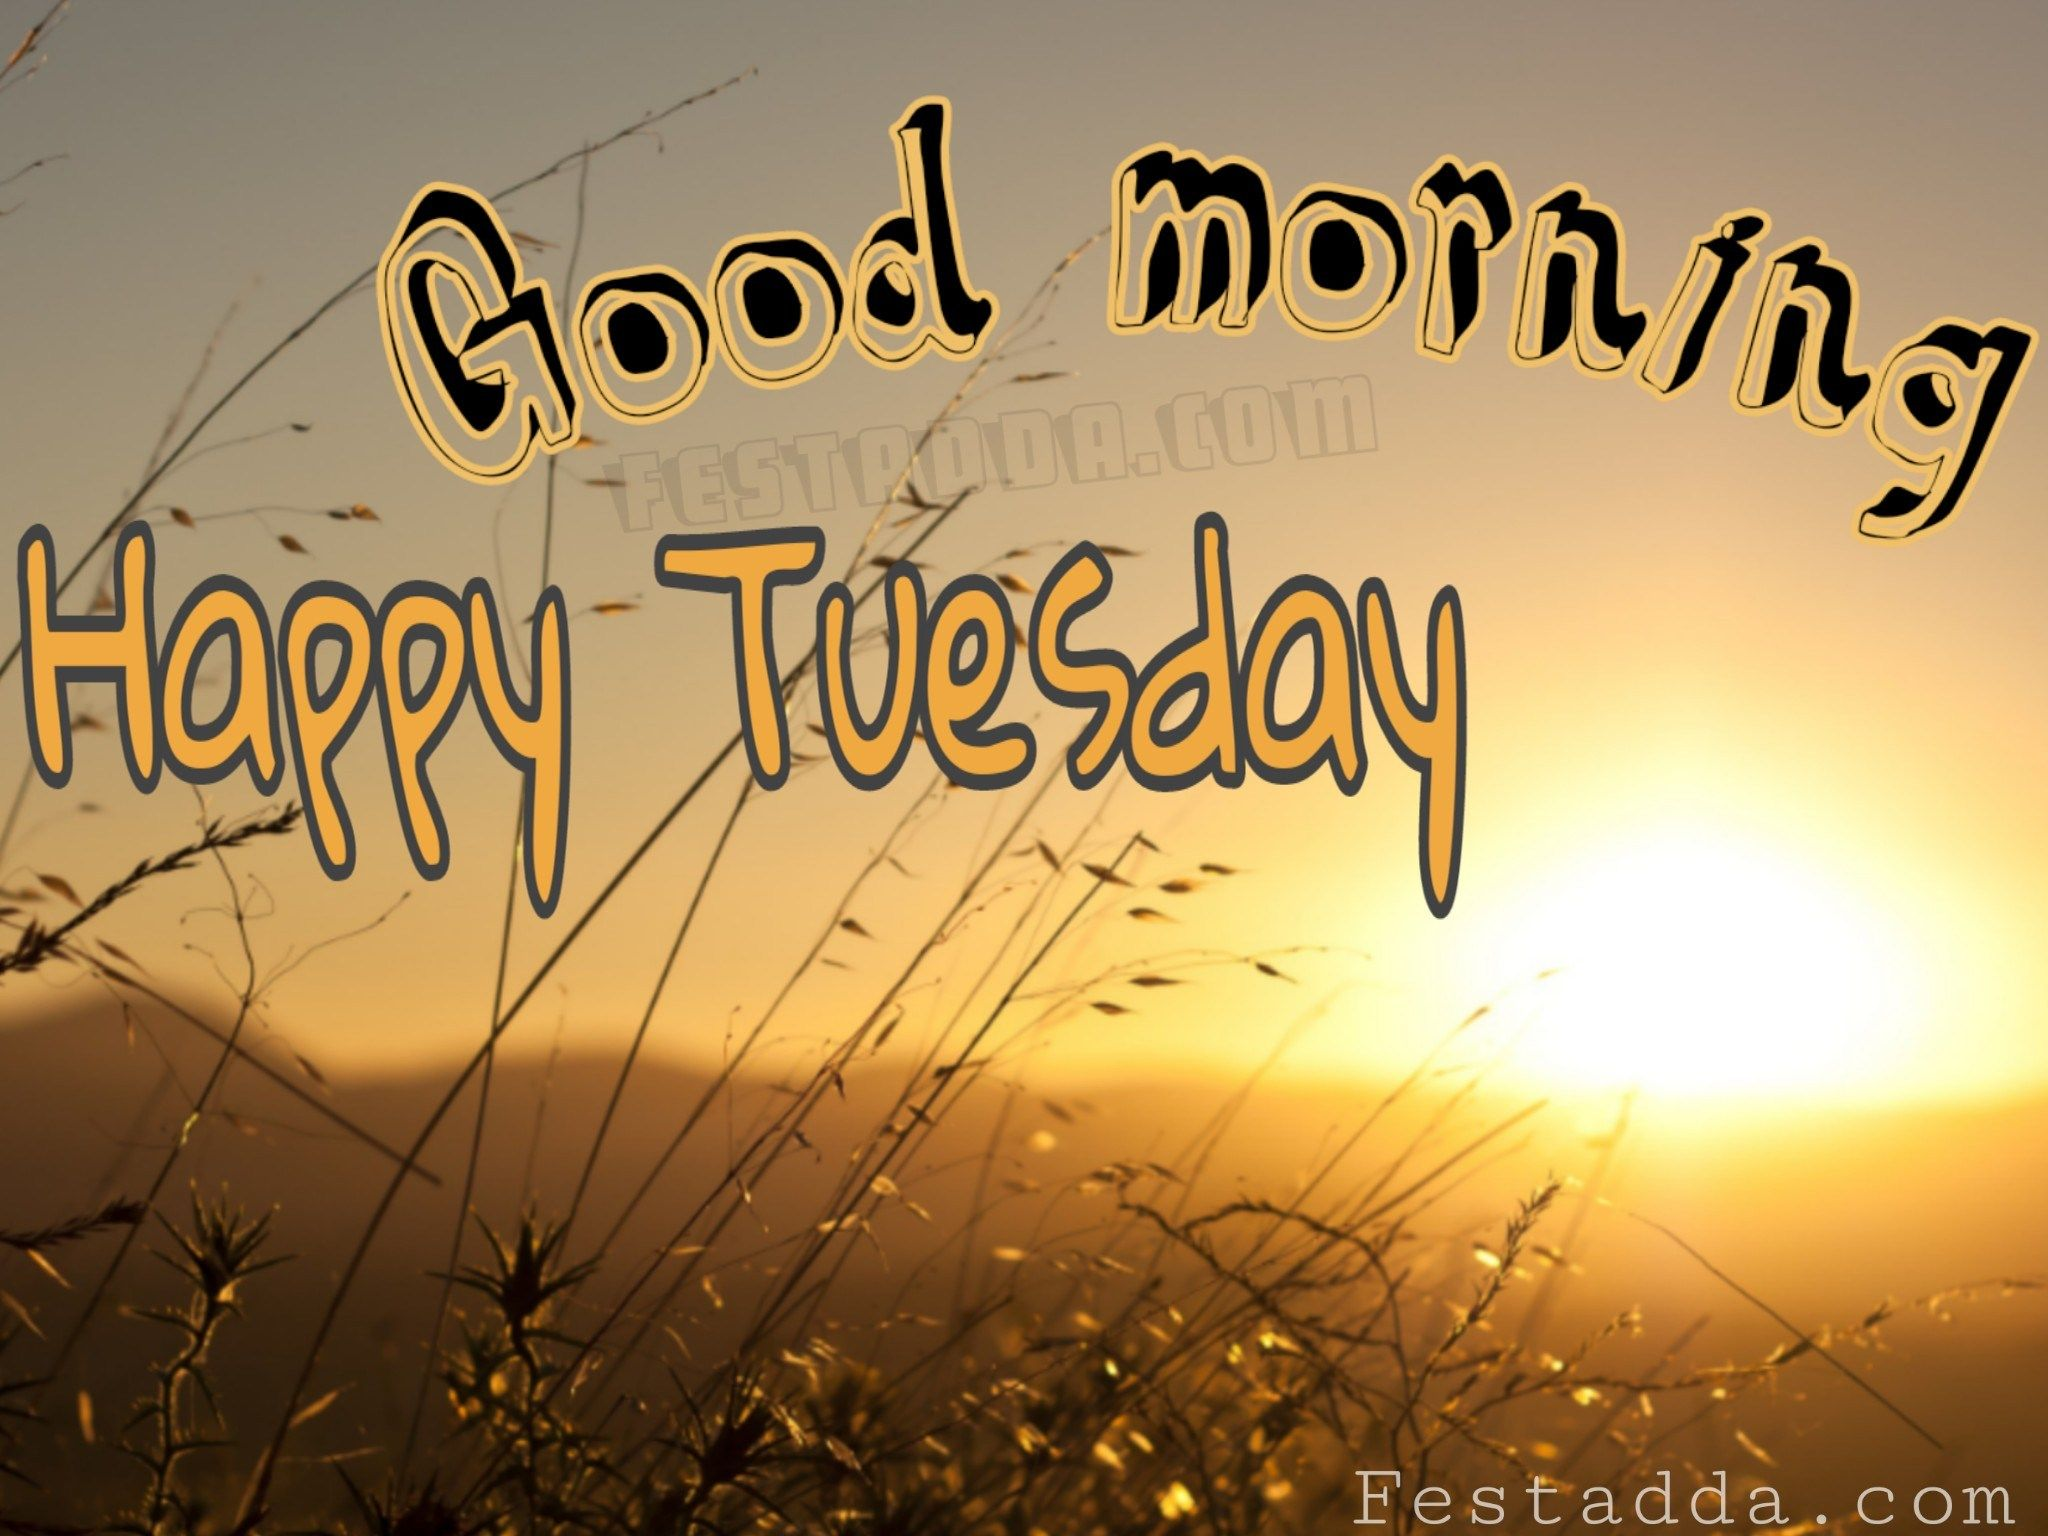 Happy Tuesday Gif Happy Tuesday Images Good Morning Tuesday Images Tuesday Images